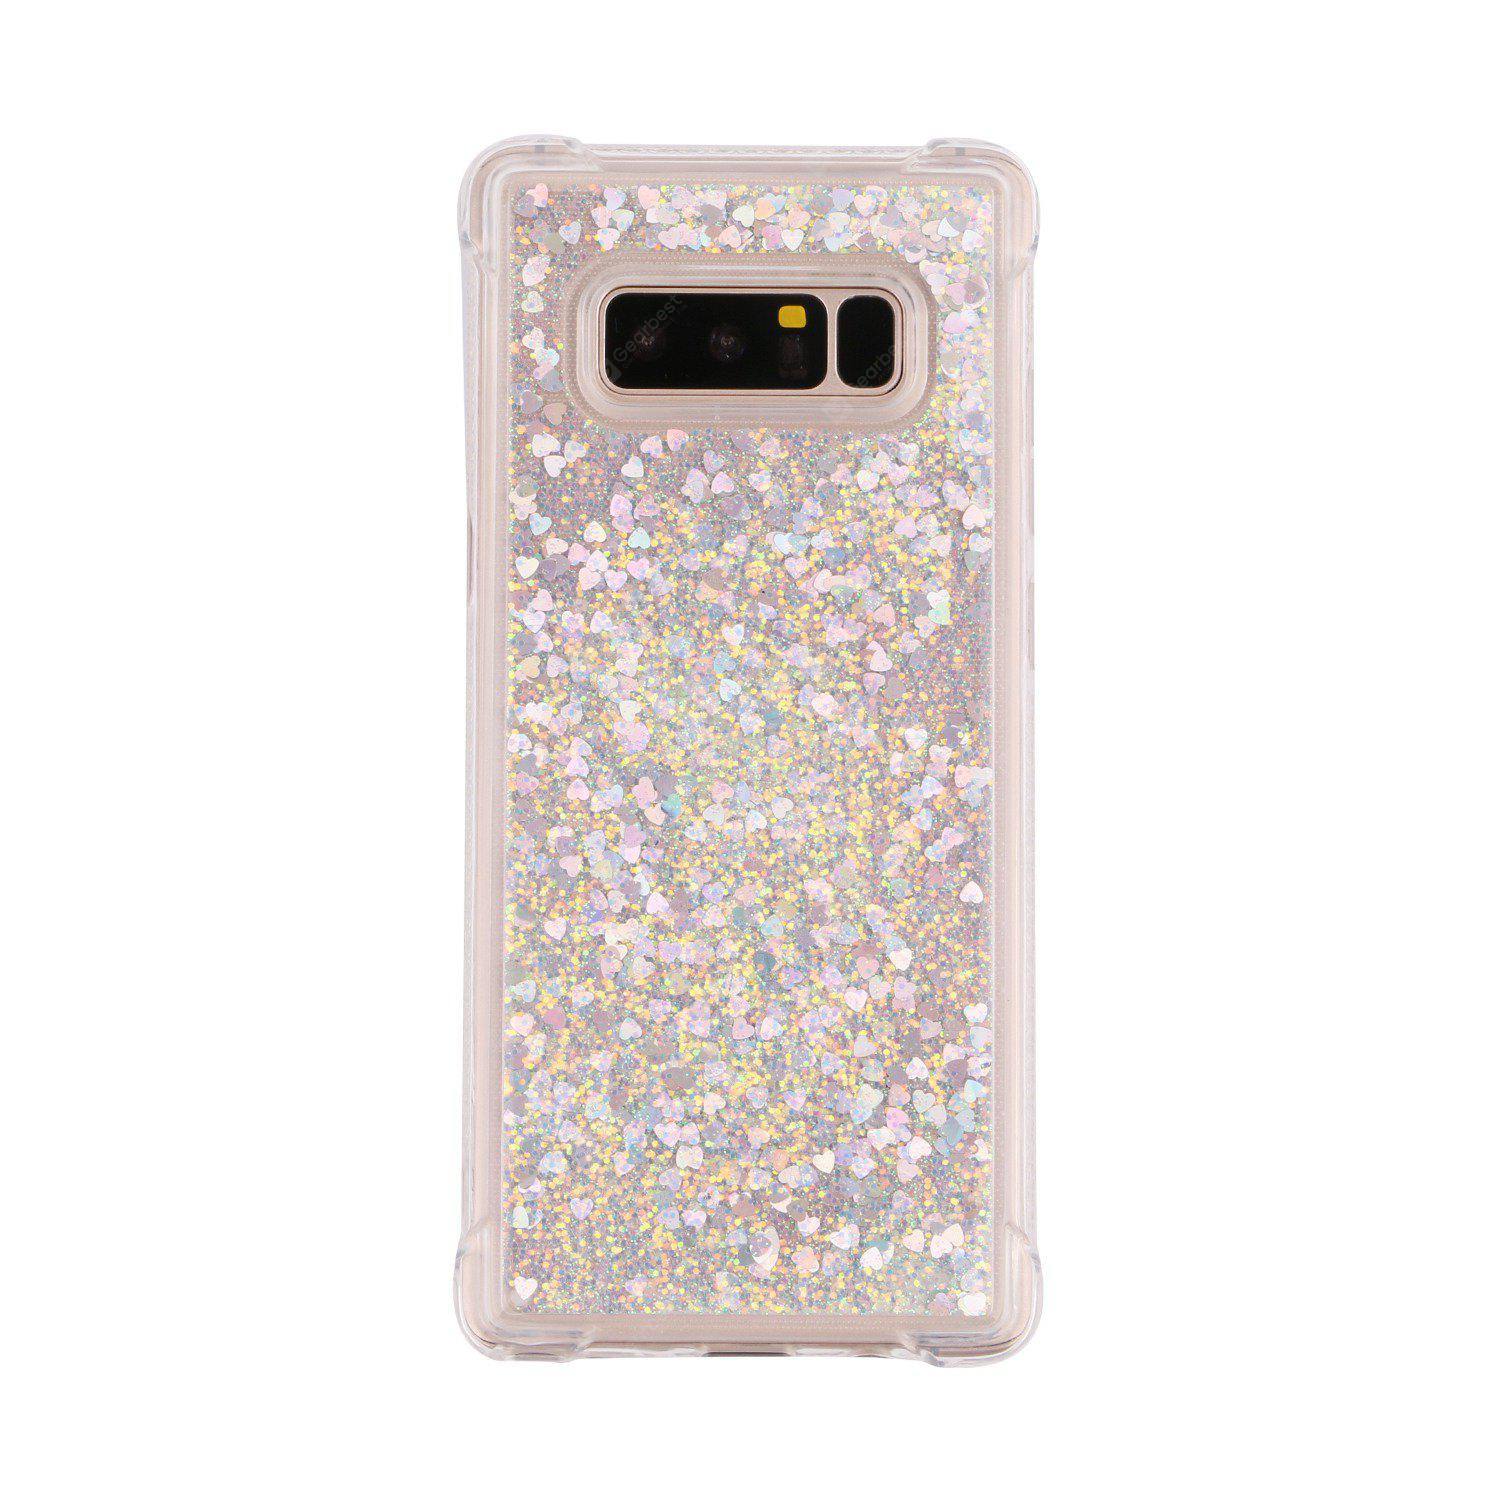 Glitter Powder Drop Resistance Cover Case